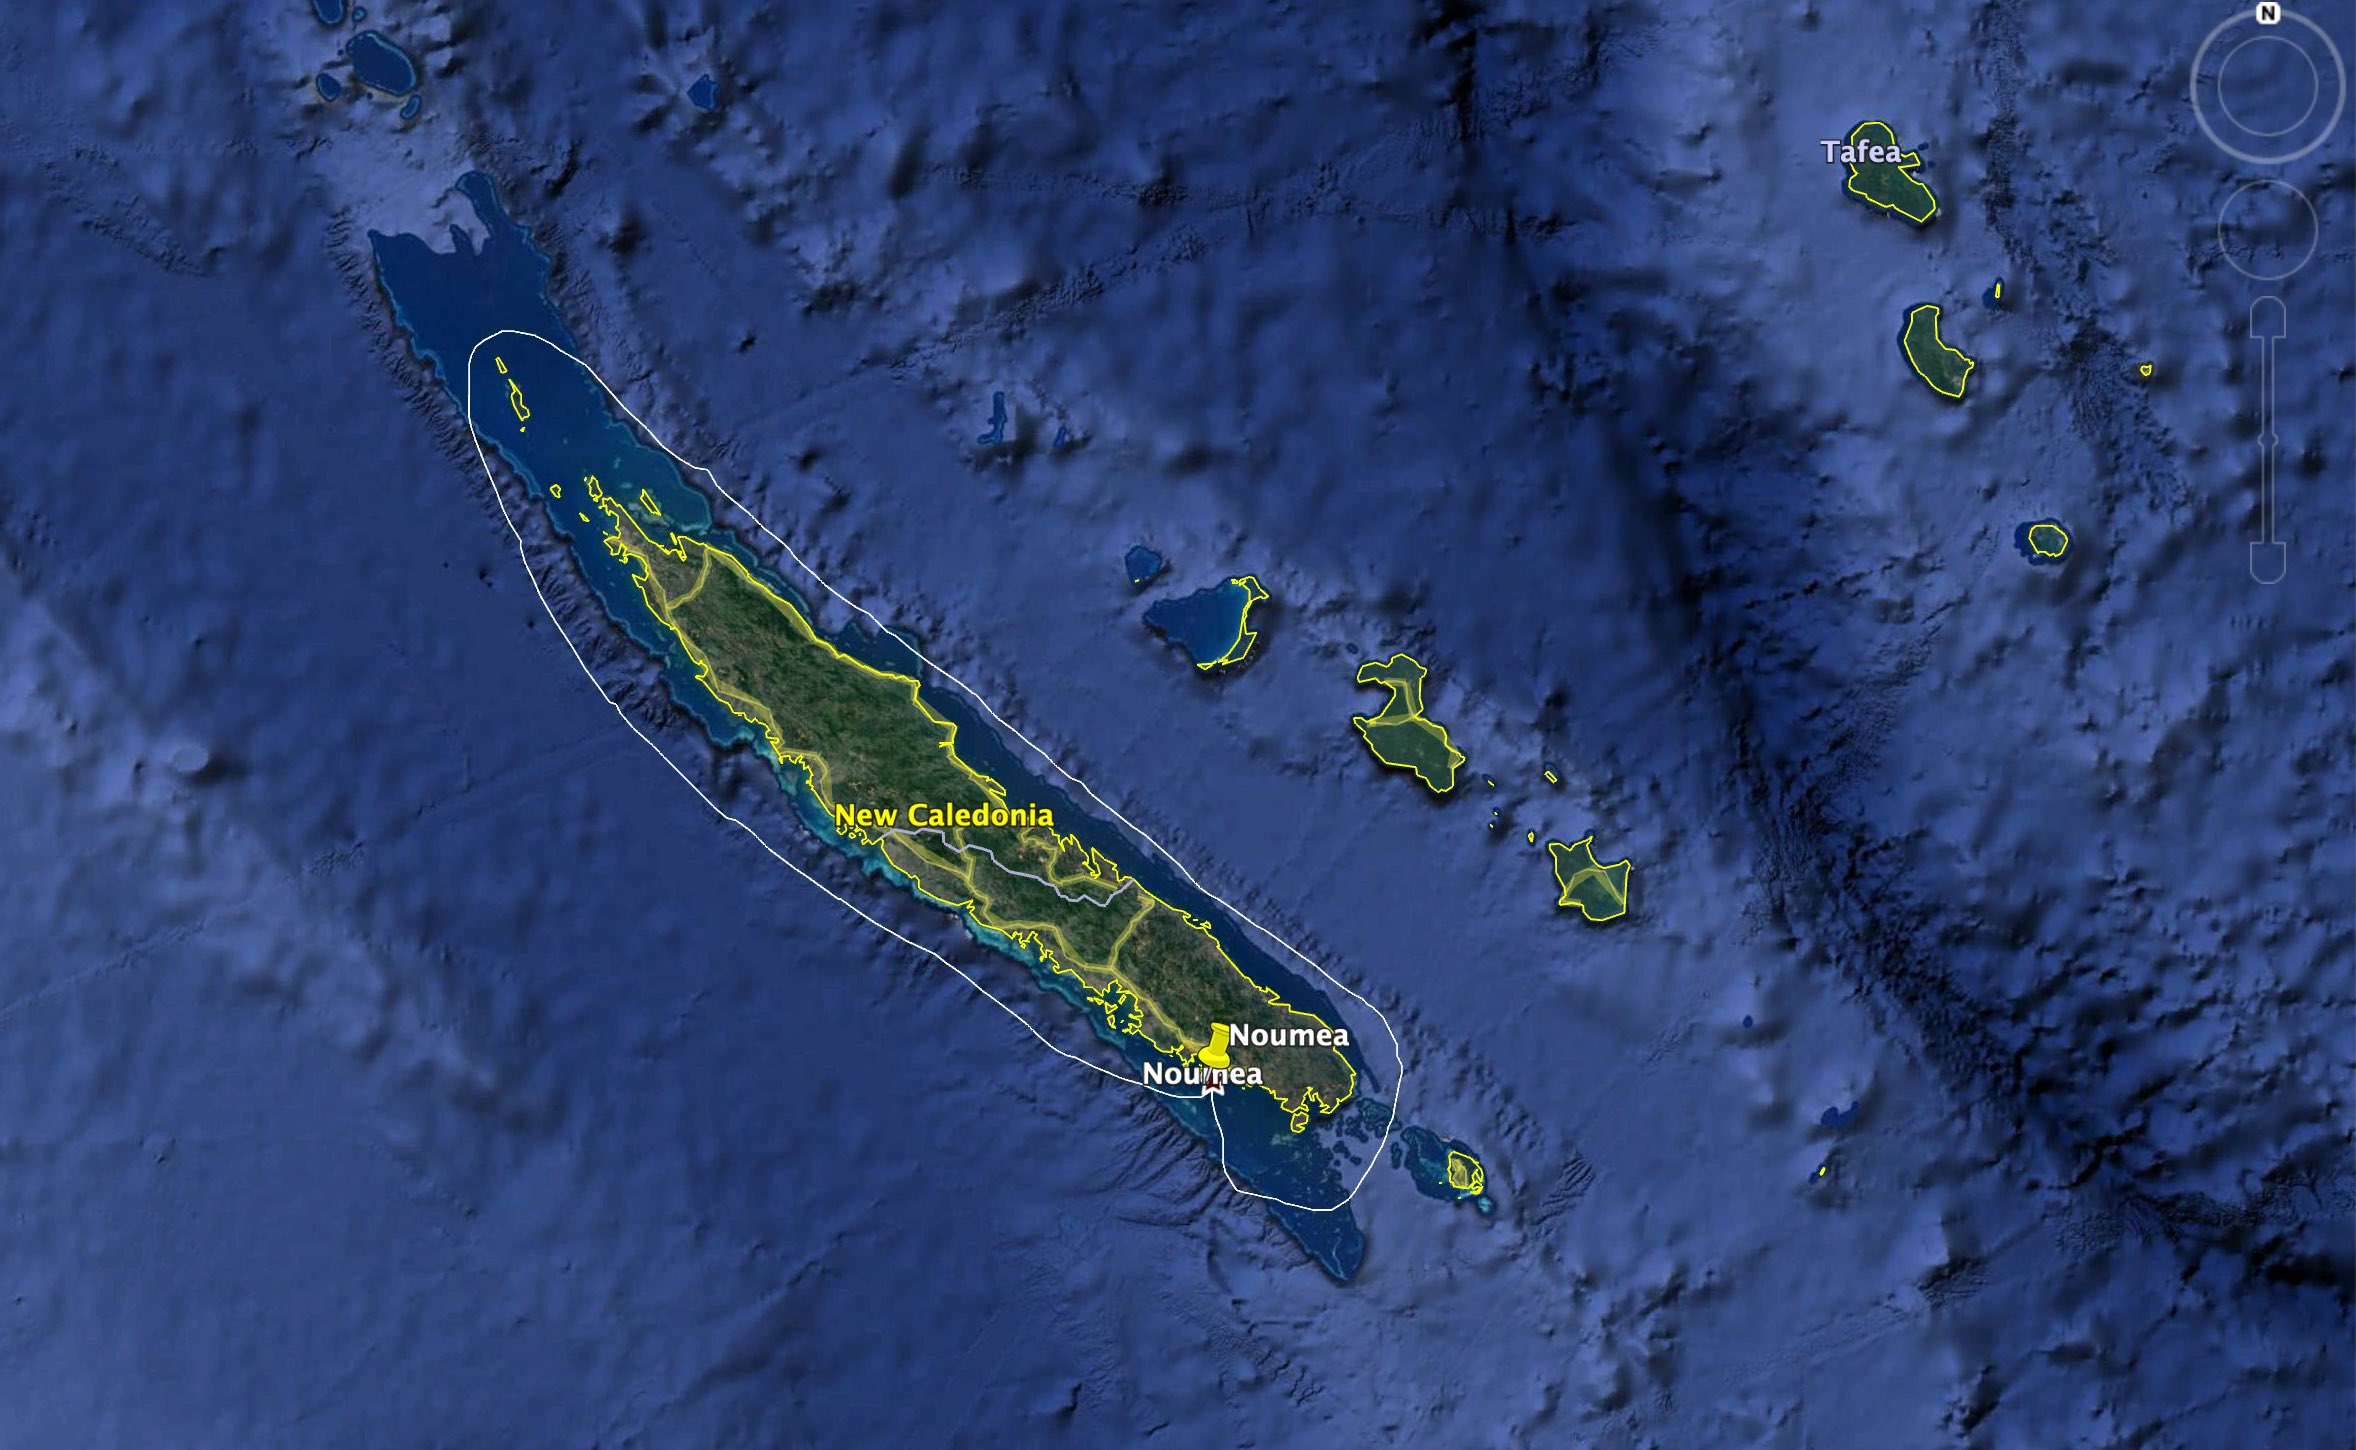 The 650nm route anti-clockwise around New Caledonia. The worlds longest windward/leeward race.